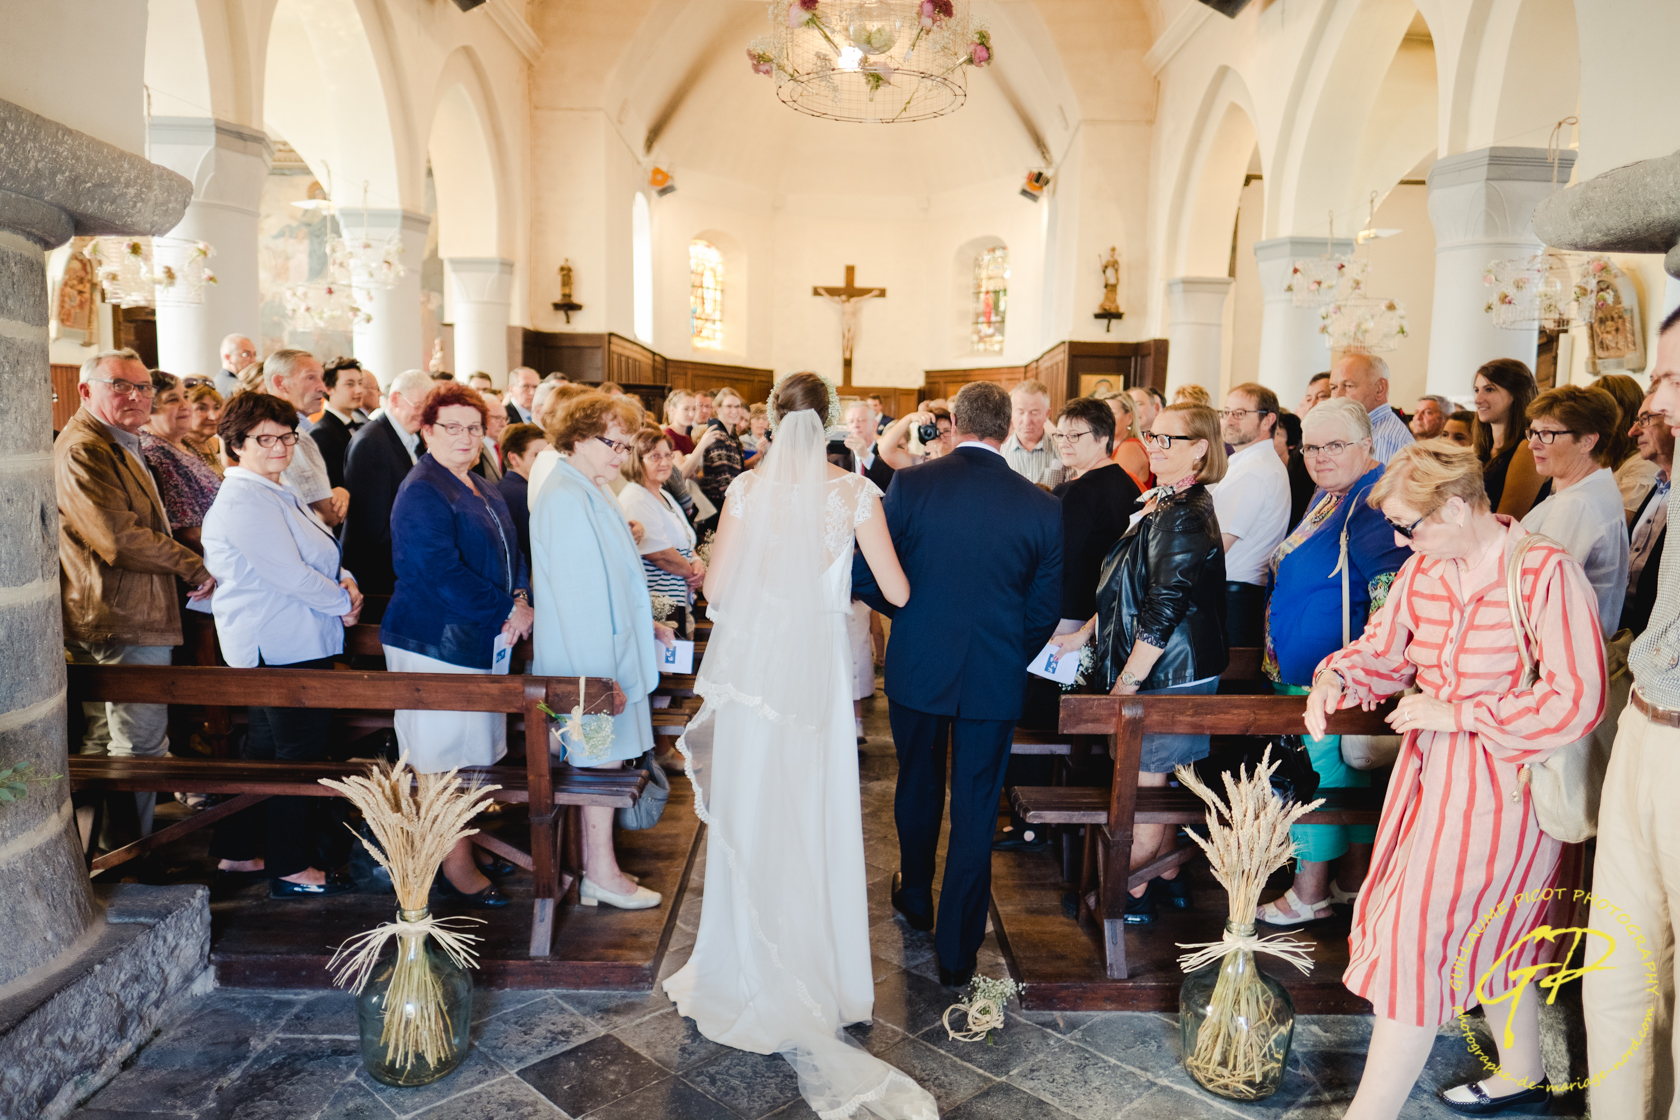 mariage-claire-fontaine-wicres-46-sur-151